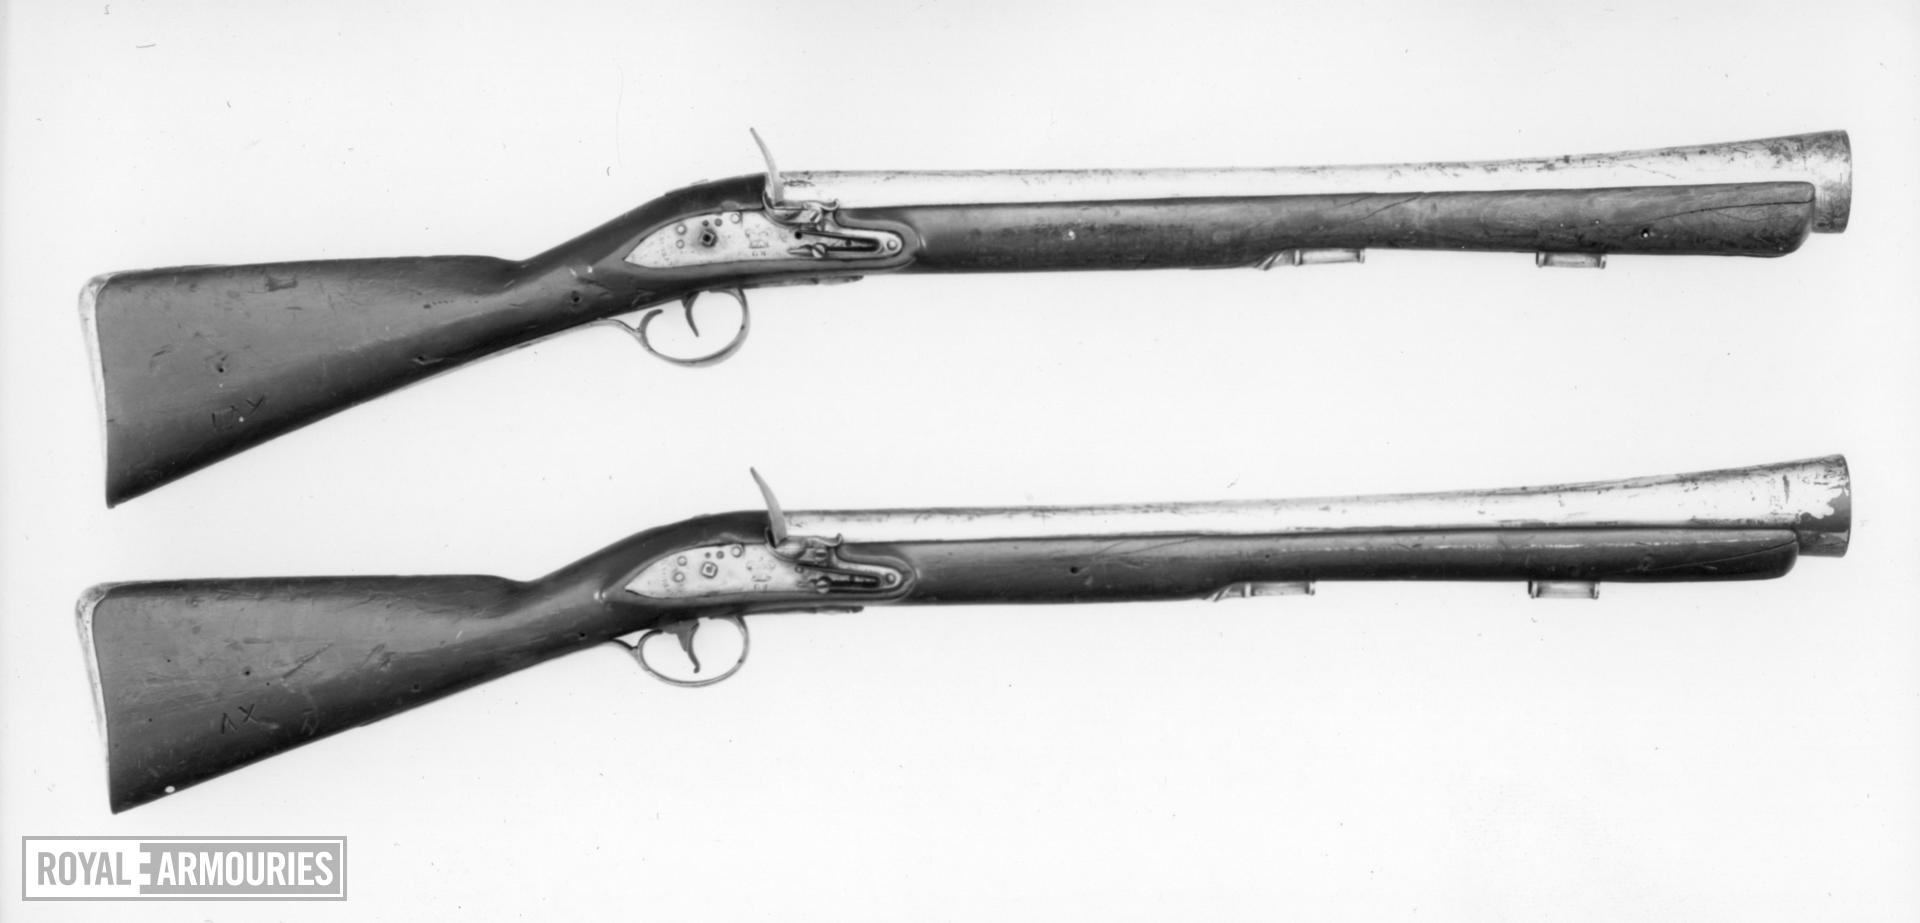 Flintlock muzzle-loading military blunderbuss - By Knubley